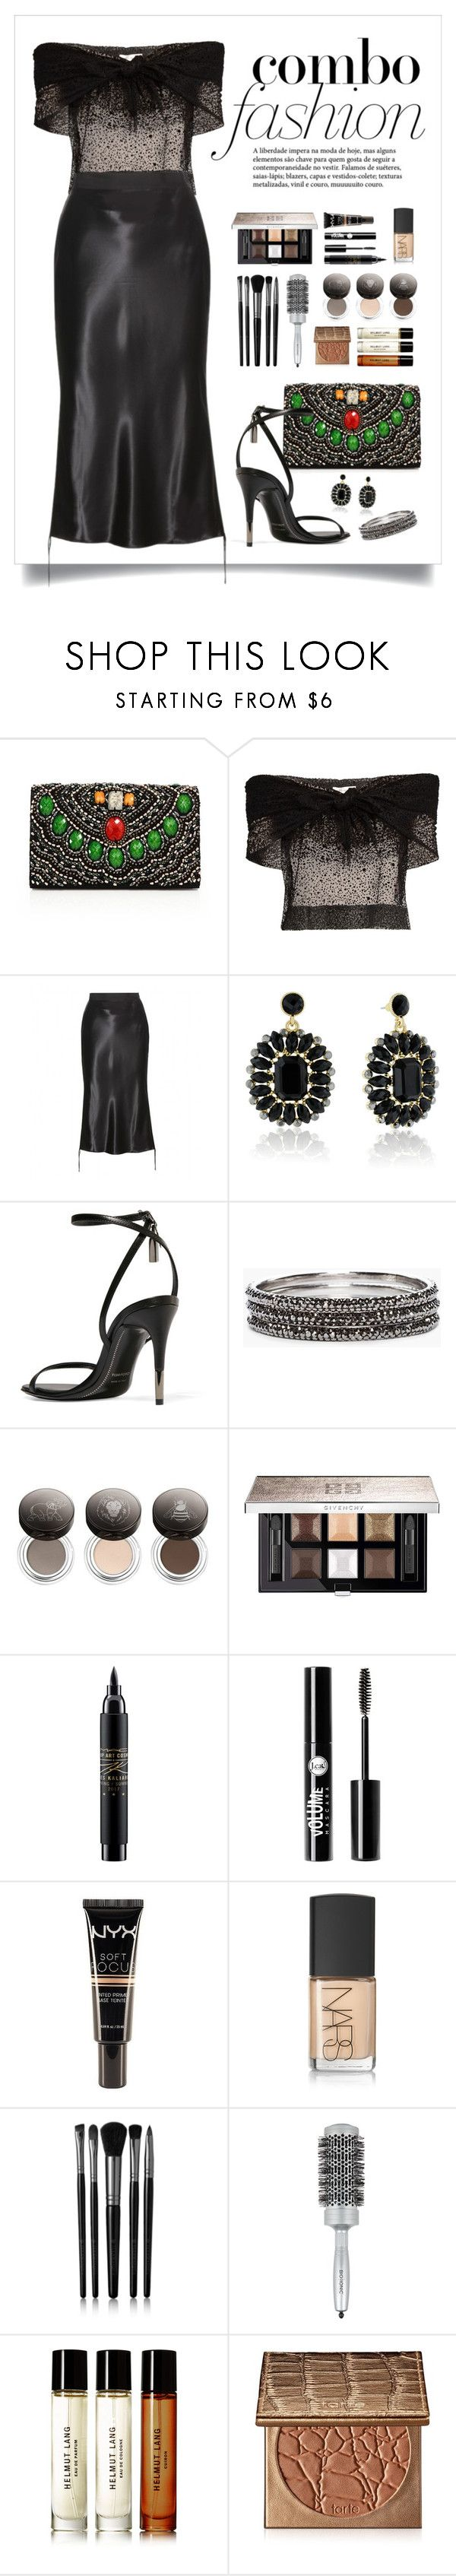 """""""Untitled #213"""" by starshineb ❤ liked on Polyvore featuring Alice + Olivia, Isa Arfen, Alexander Wang, Tom Ford, Chico's, Chantecaille, Givenchy, MAC Cosmetics, Charlotte Russe and NYX"""